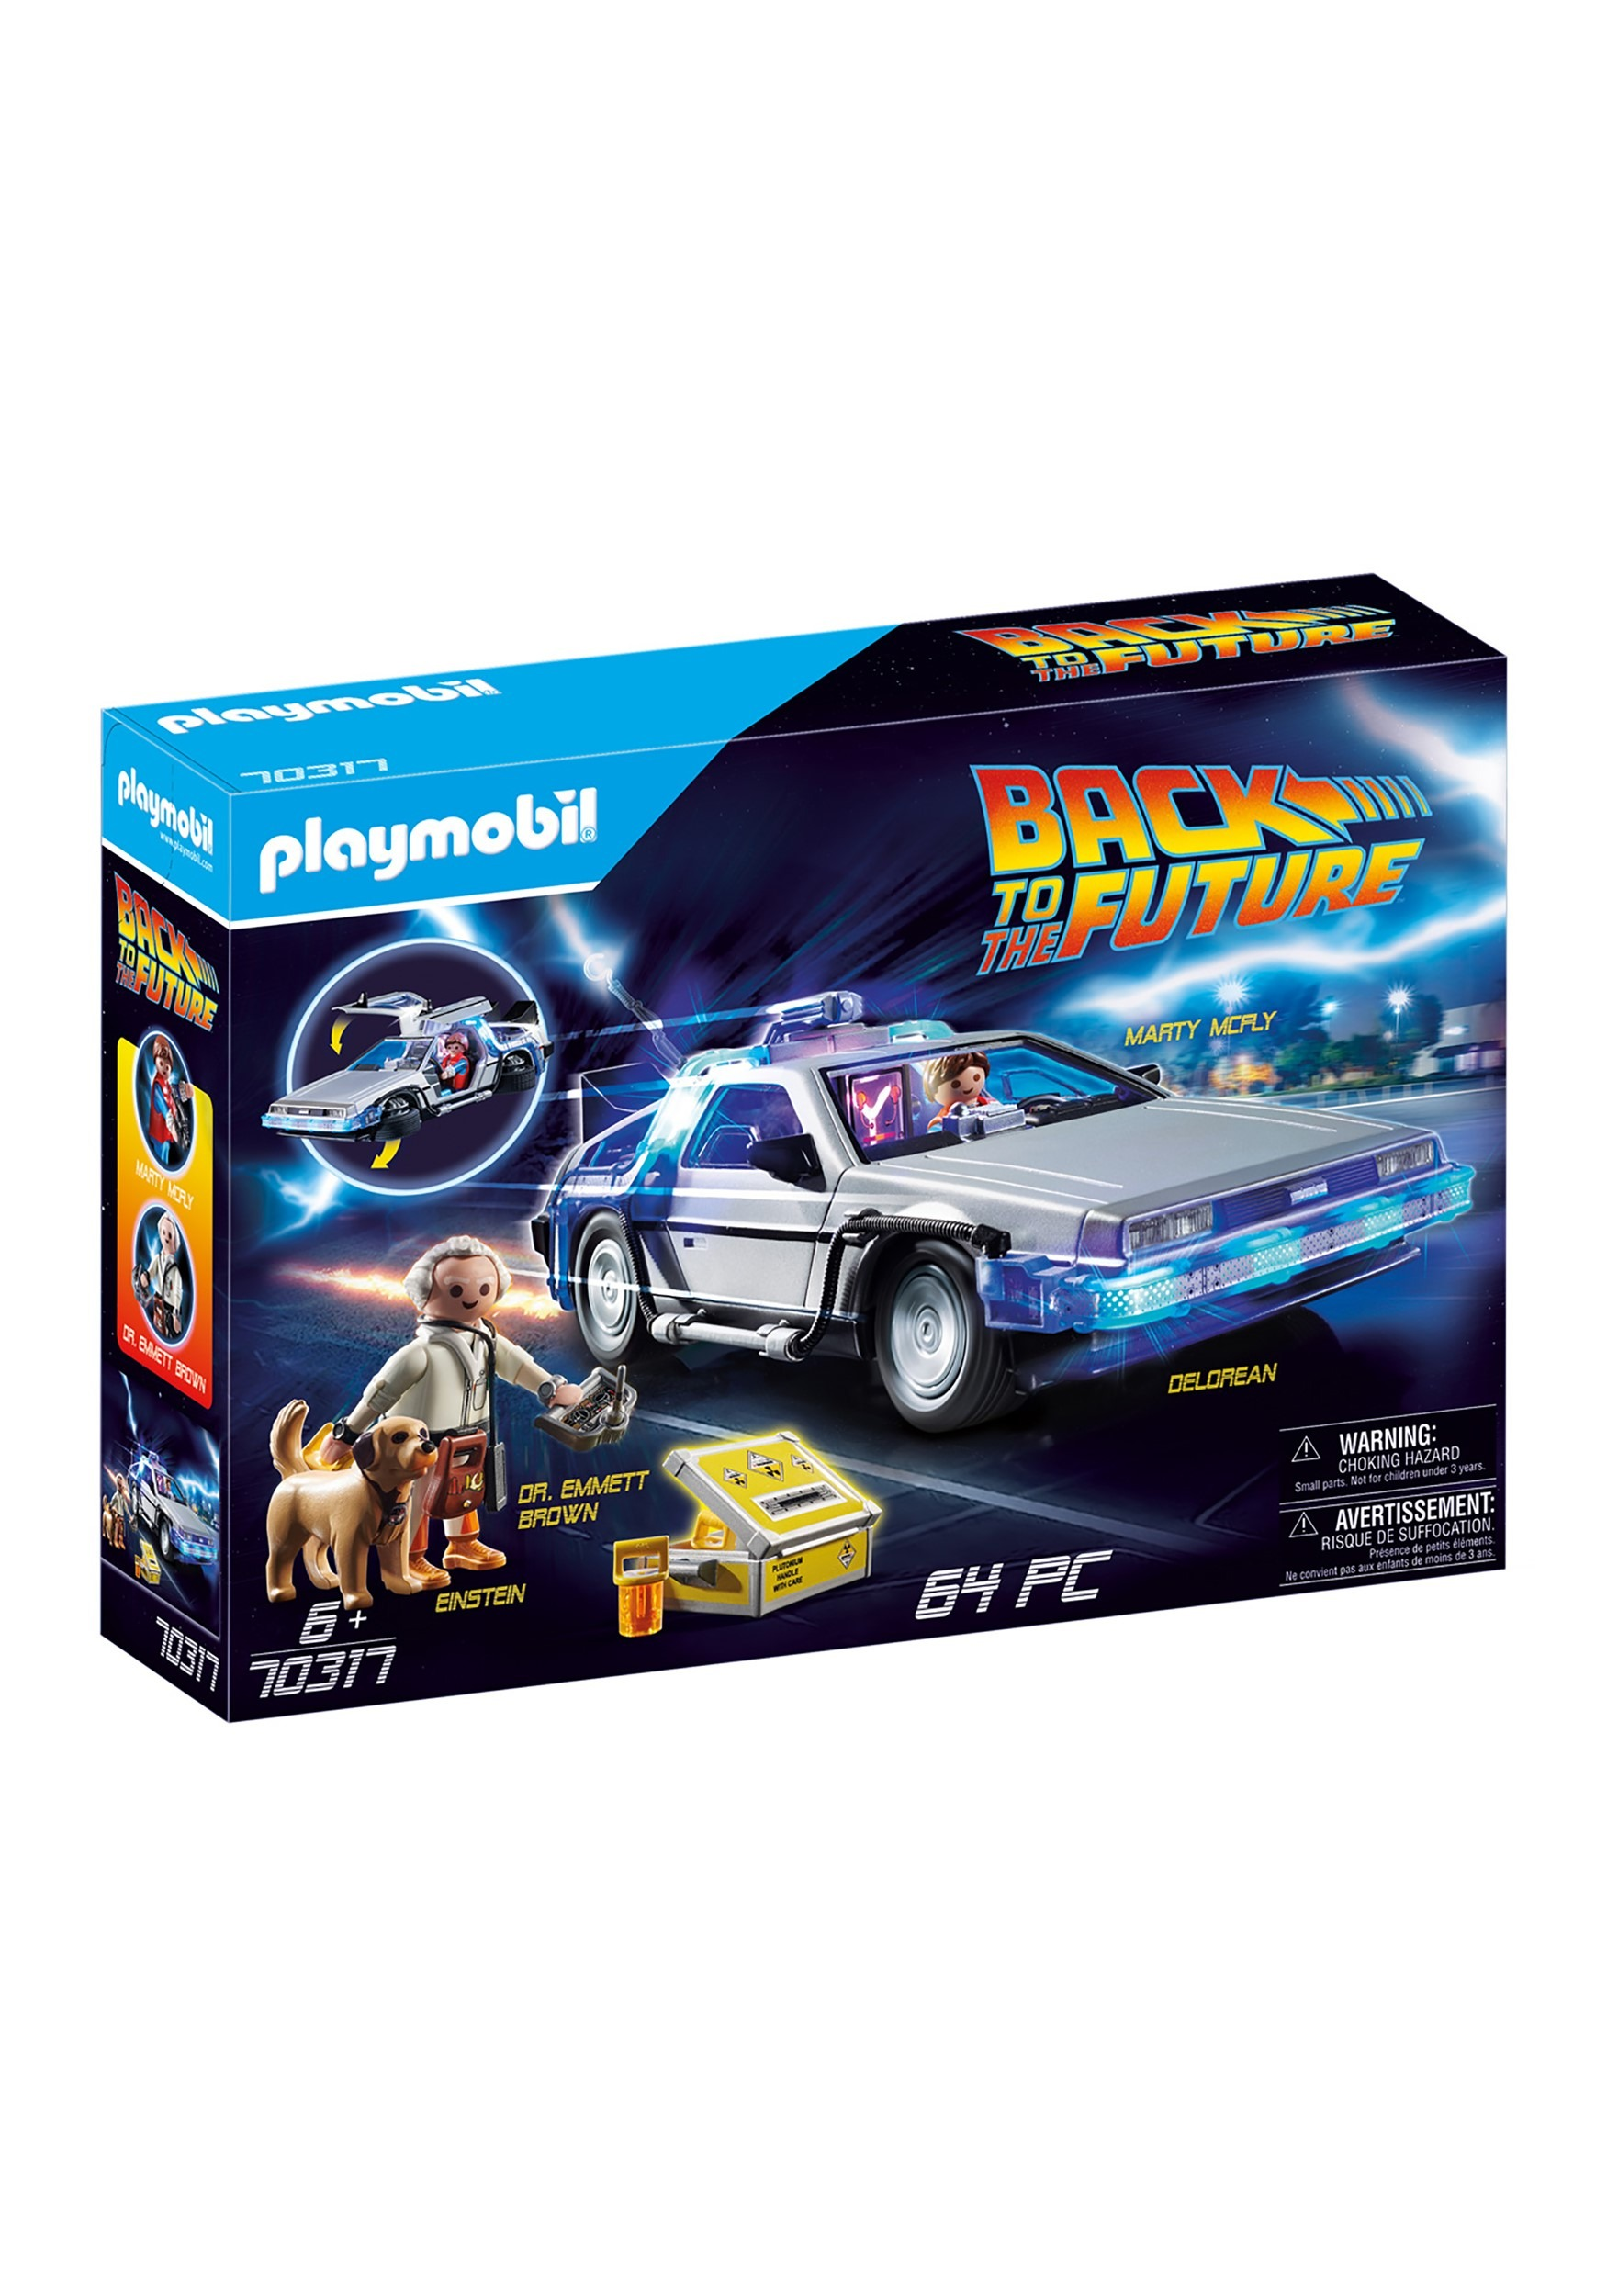 Back to the Future  Playmobil DeLorean Playset